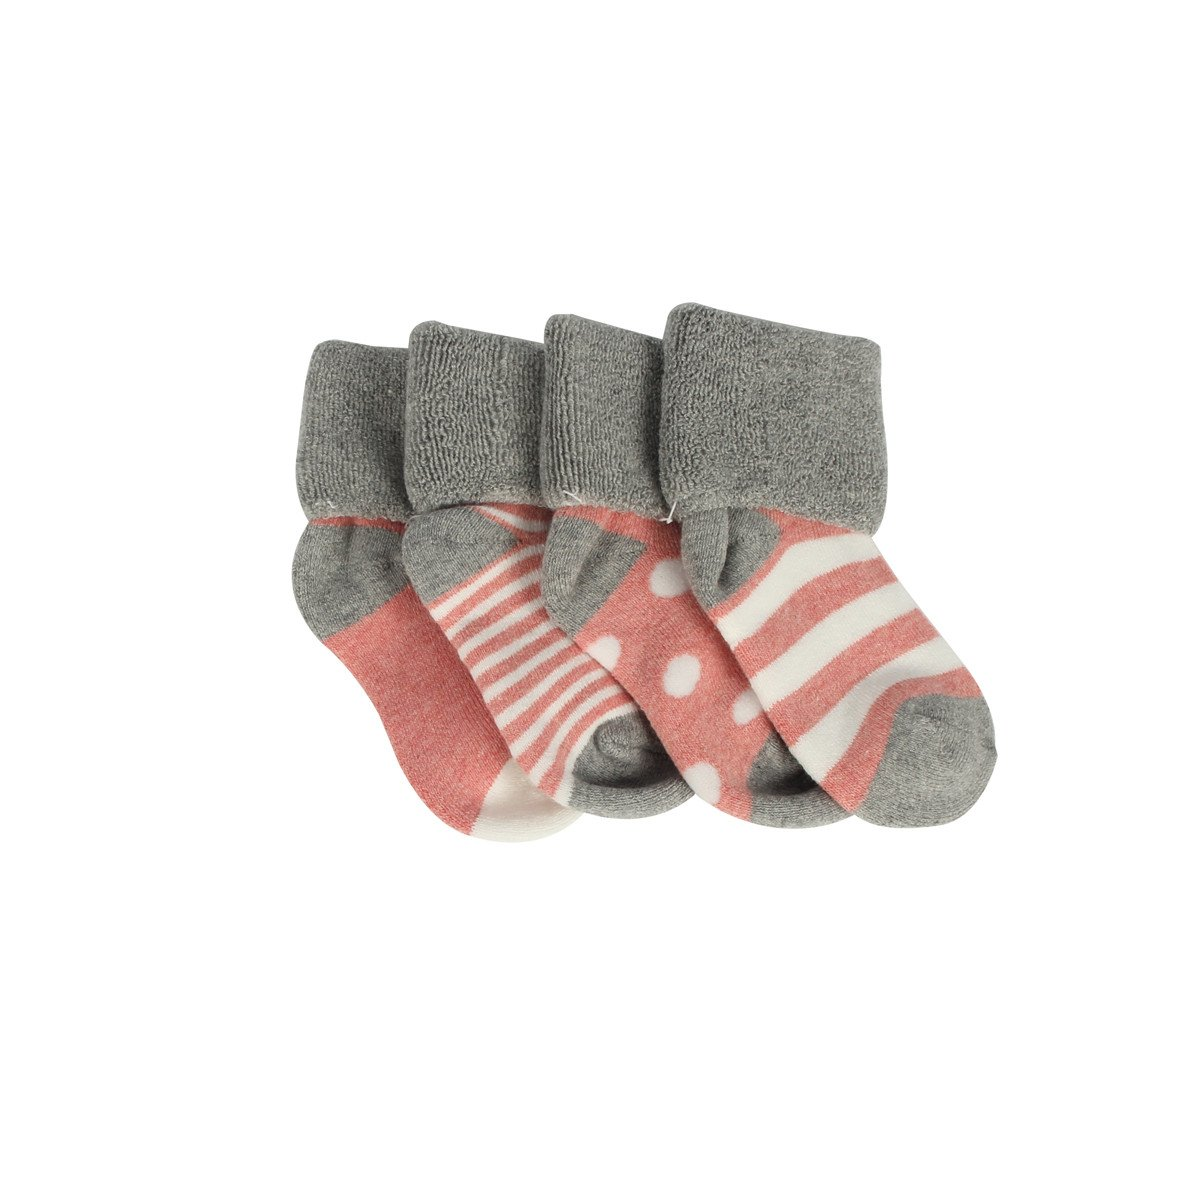 Assorted Baby Girls /& Boys 4 Pairs Anklet Socks 0-12 Months// 12-24 Months